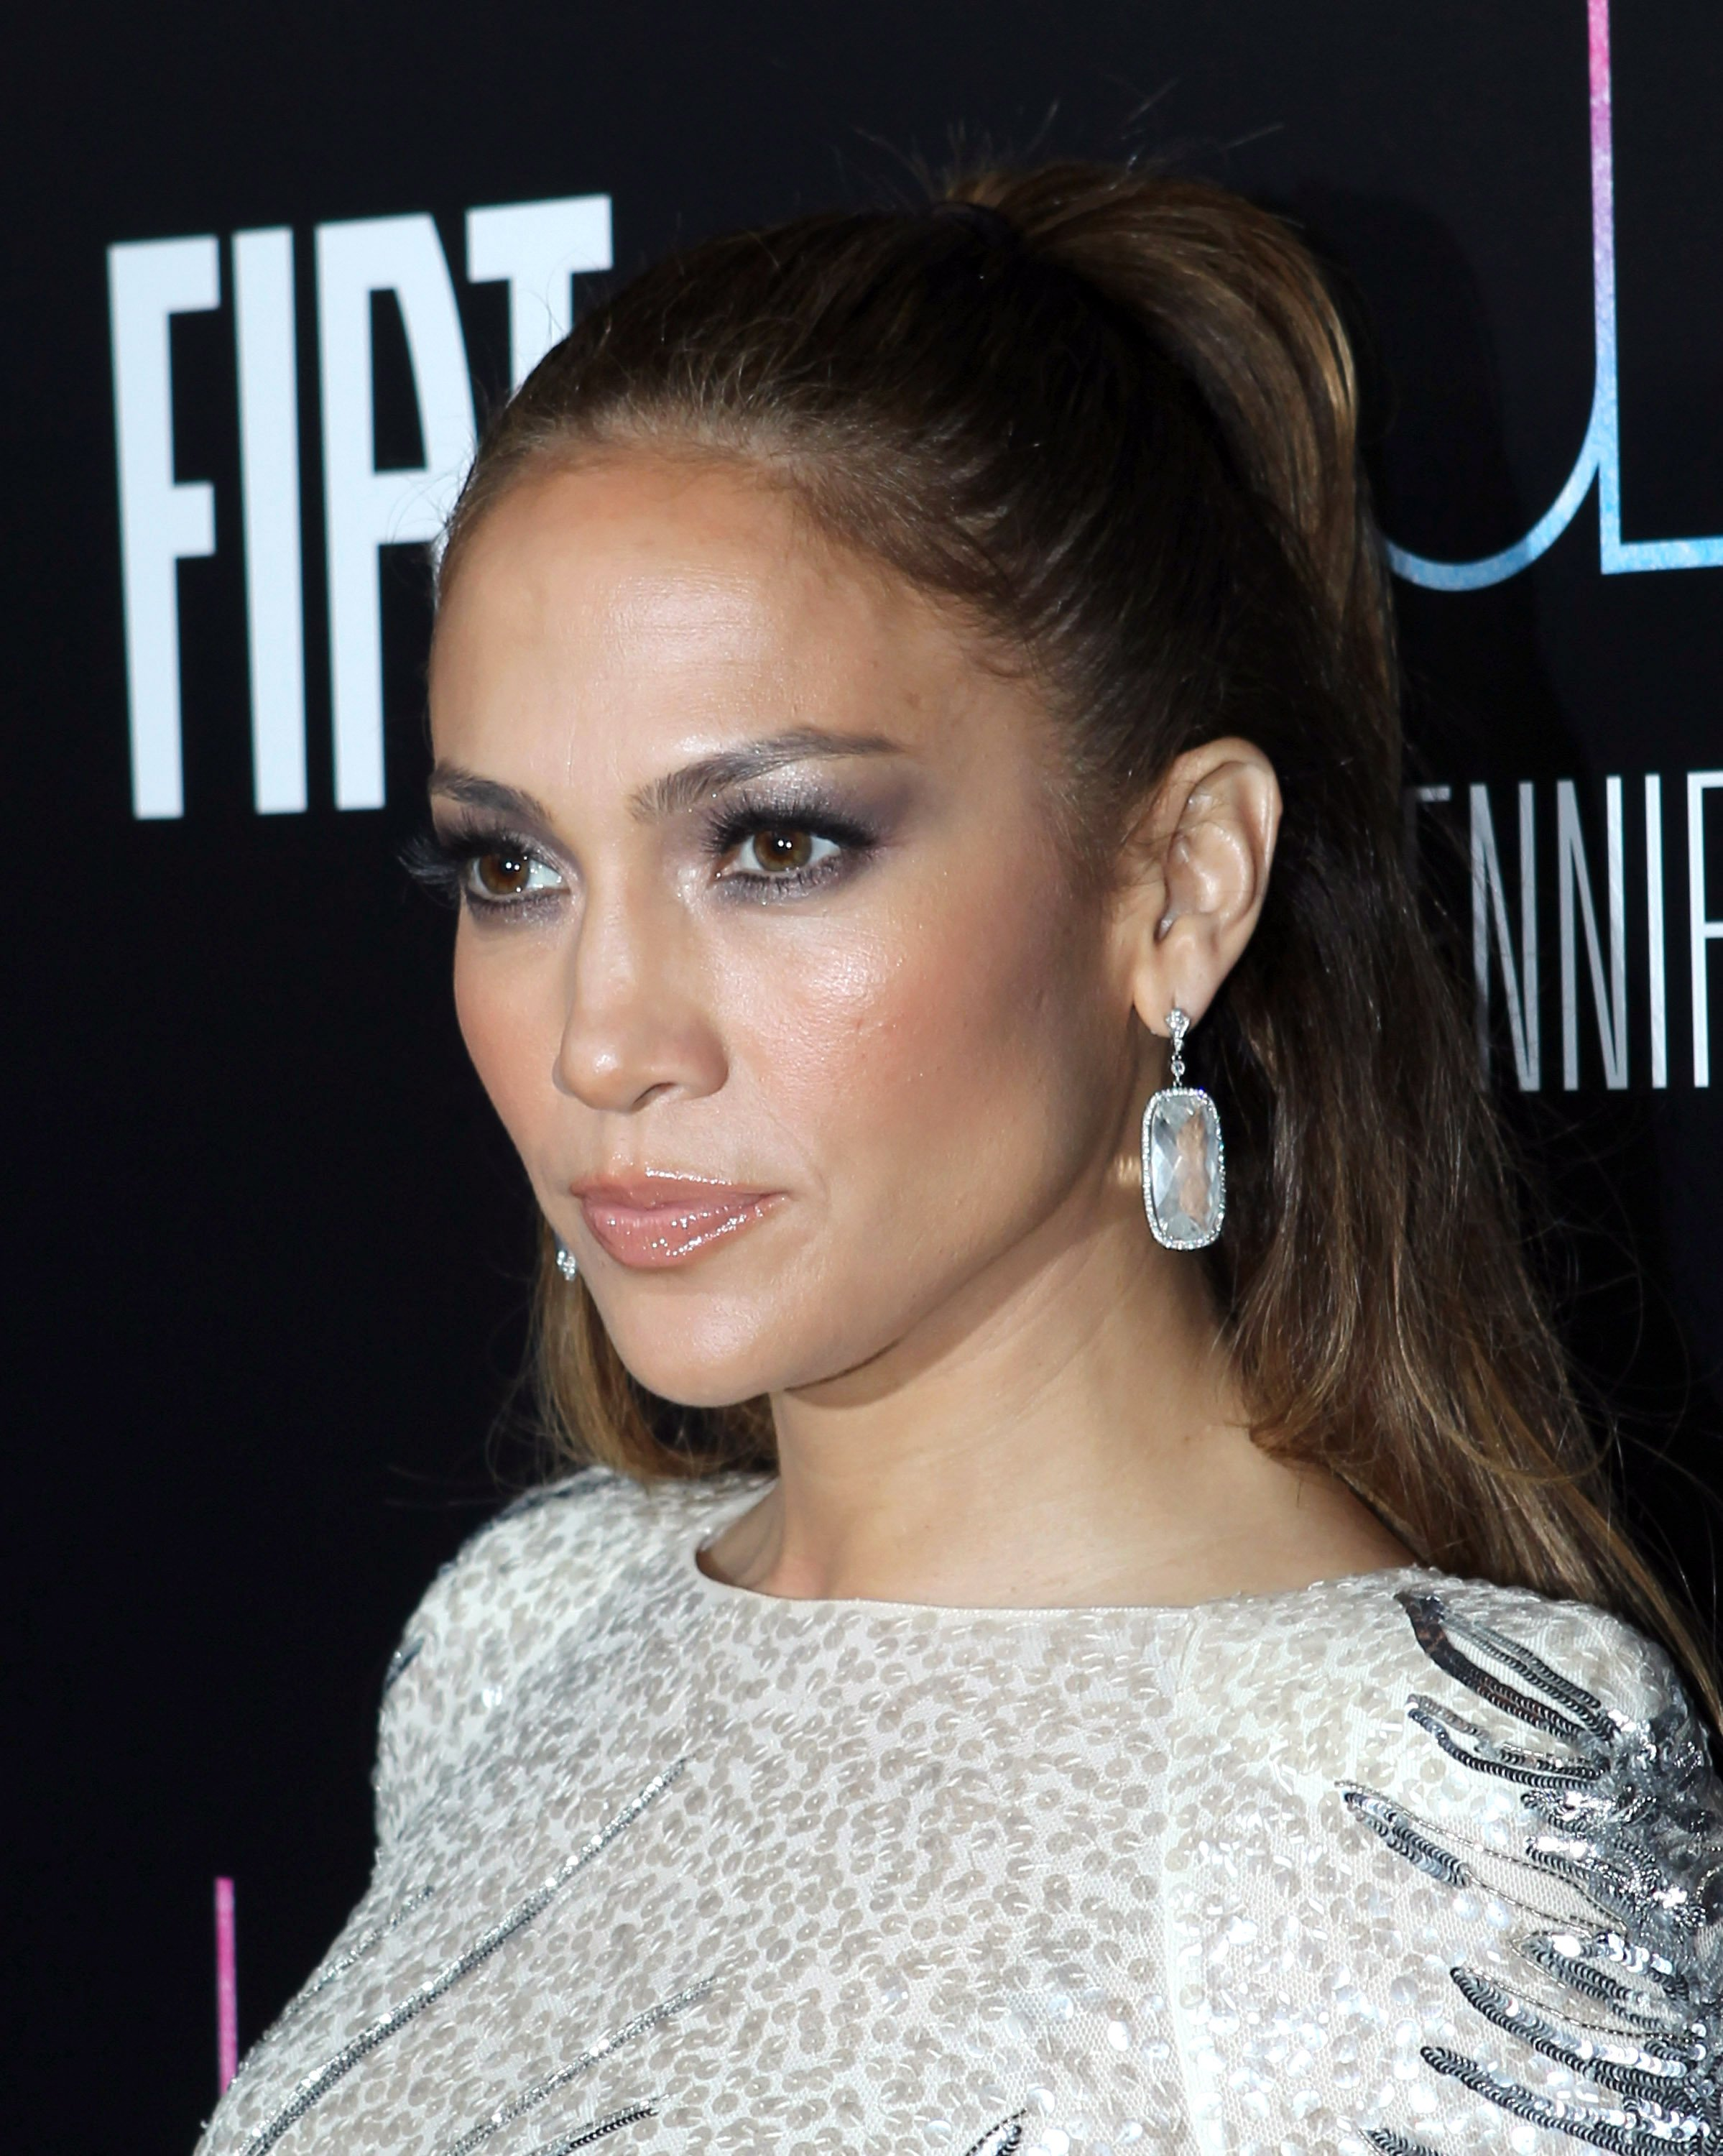 Jennifer Lopez attending the American Music Awards After Party on November 20, 2011, in West Hollywood, California | Source: Getty Images